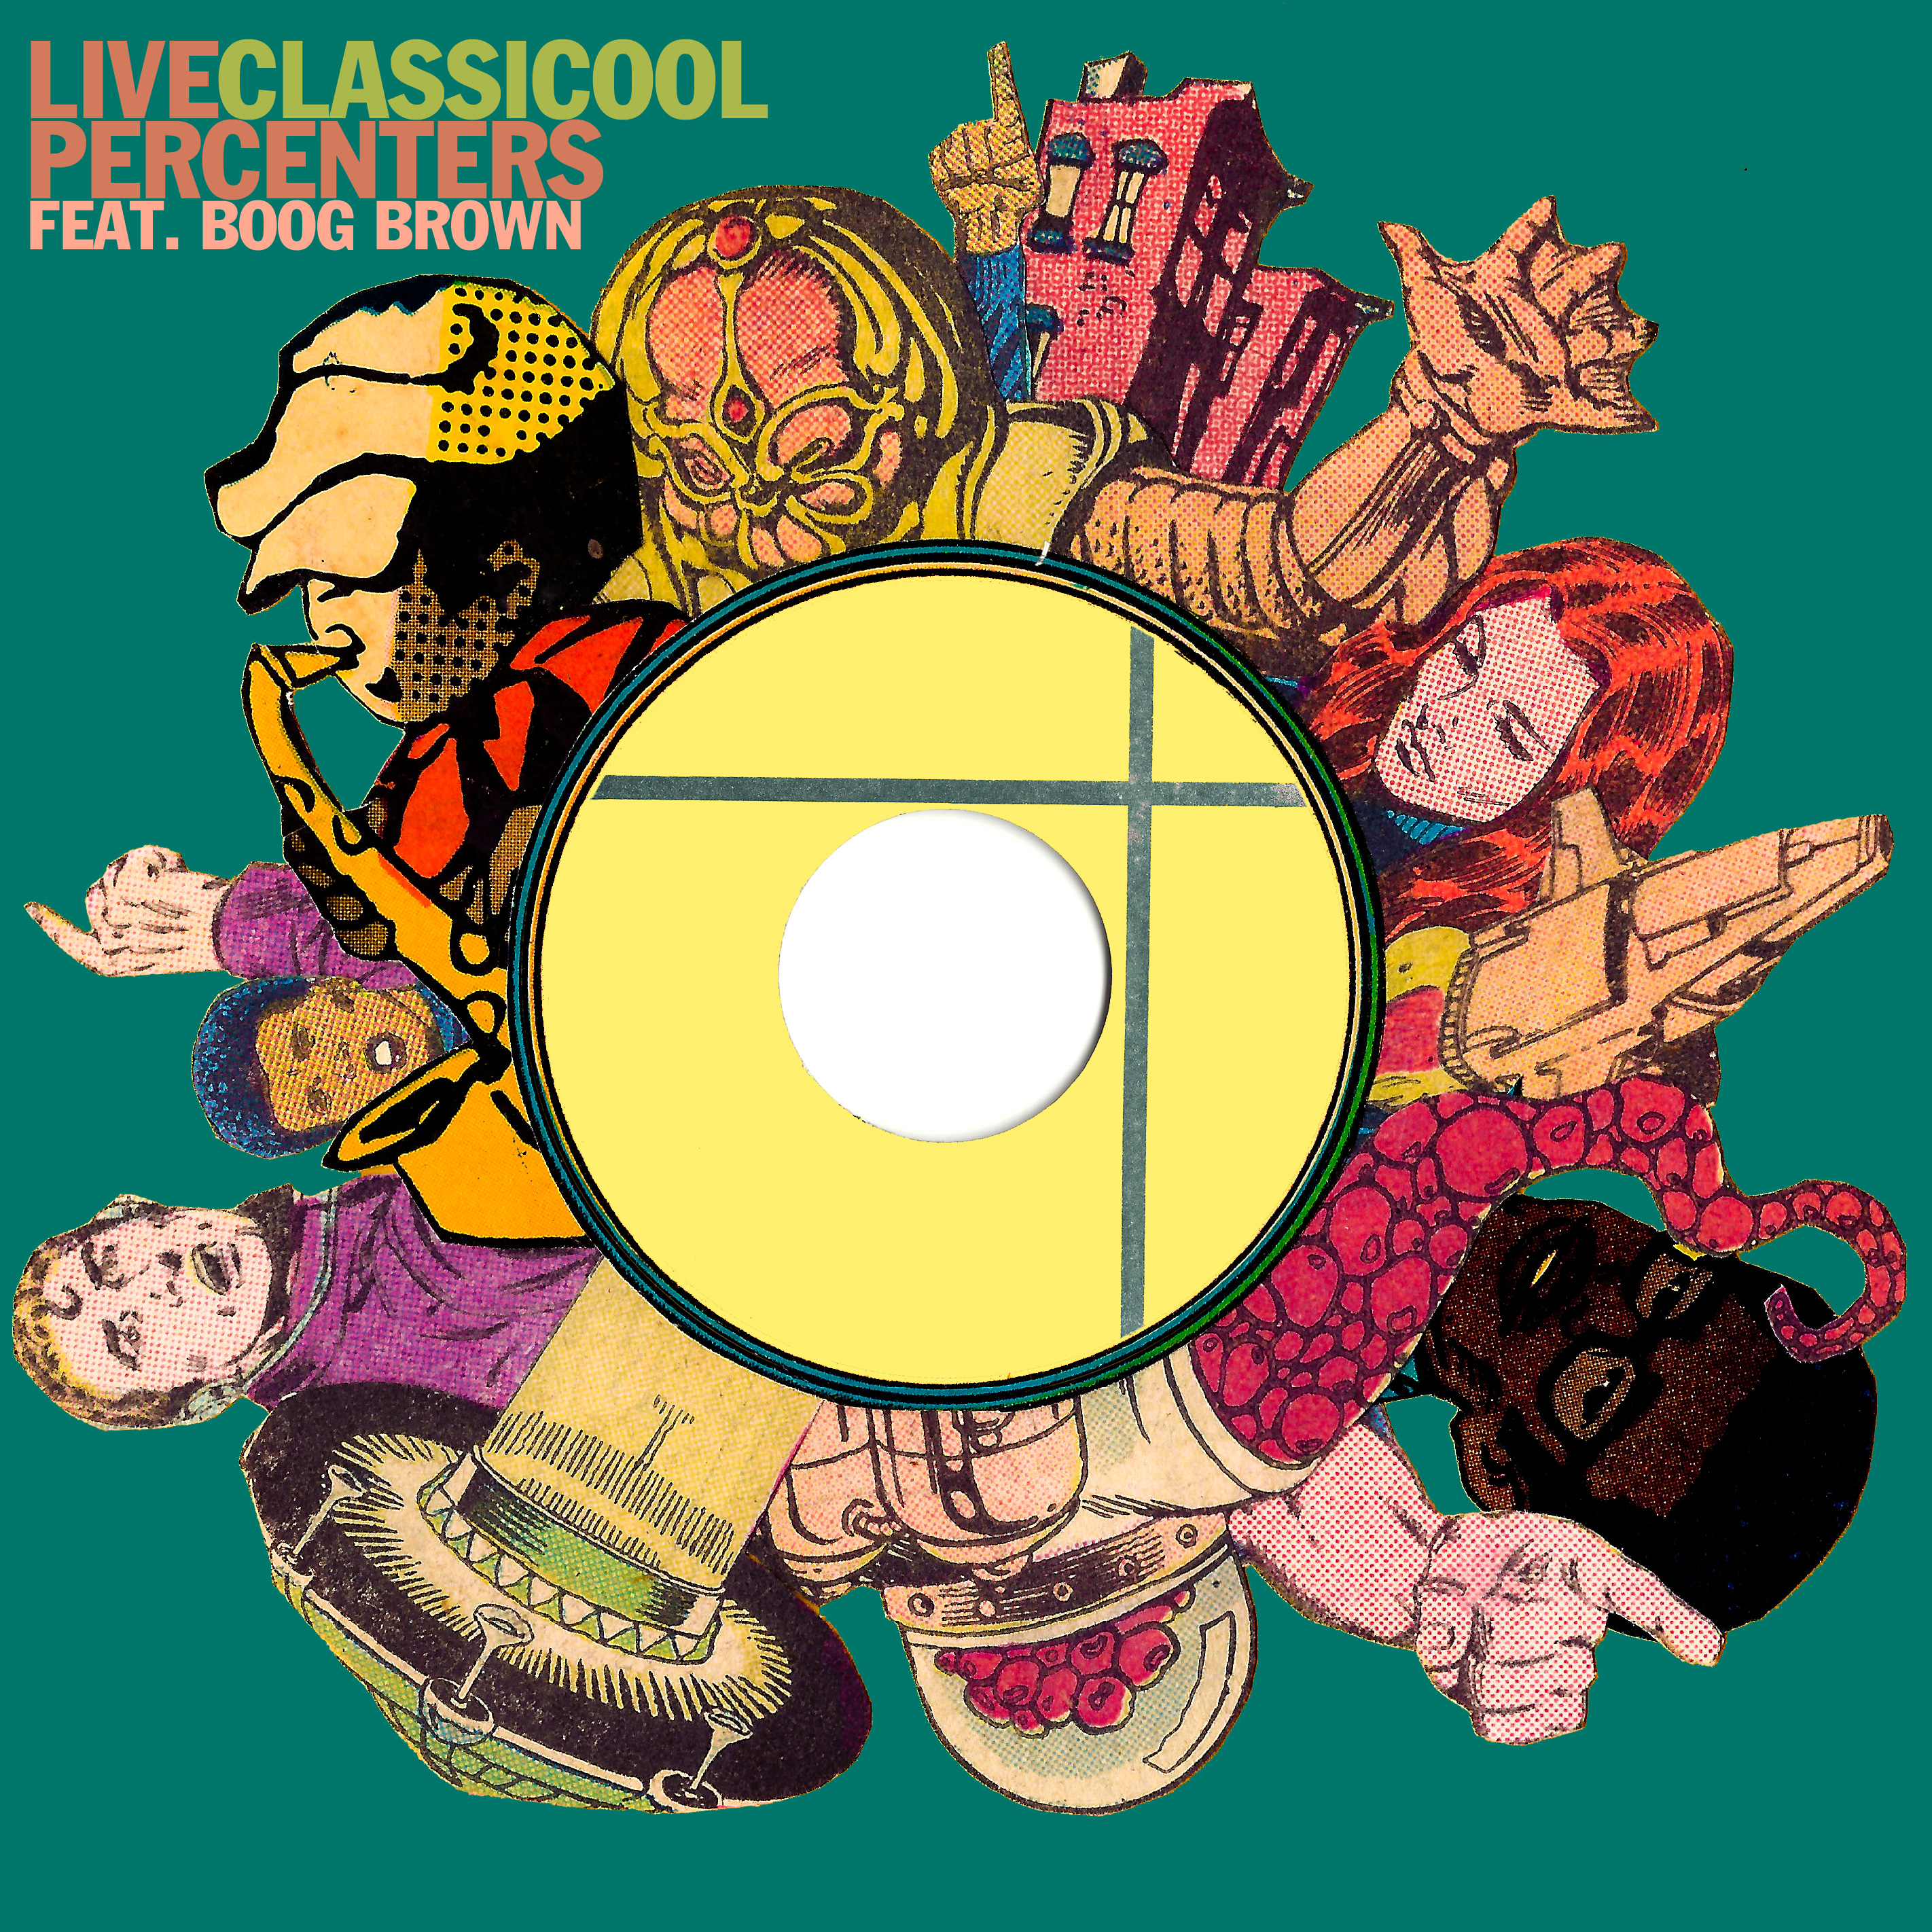 Free MP3s: Live Percenters – Classicool (ft. Boog Brown)